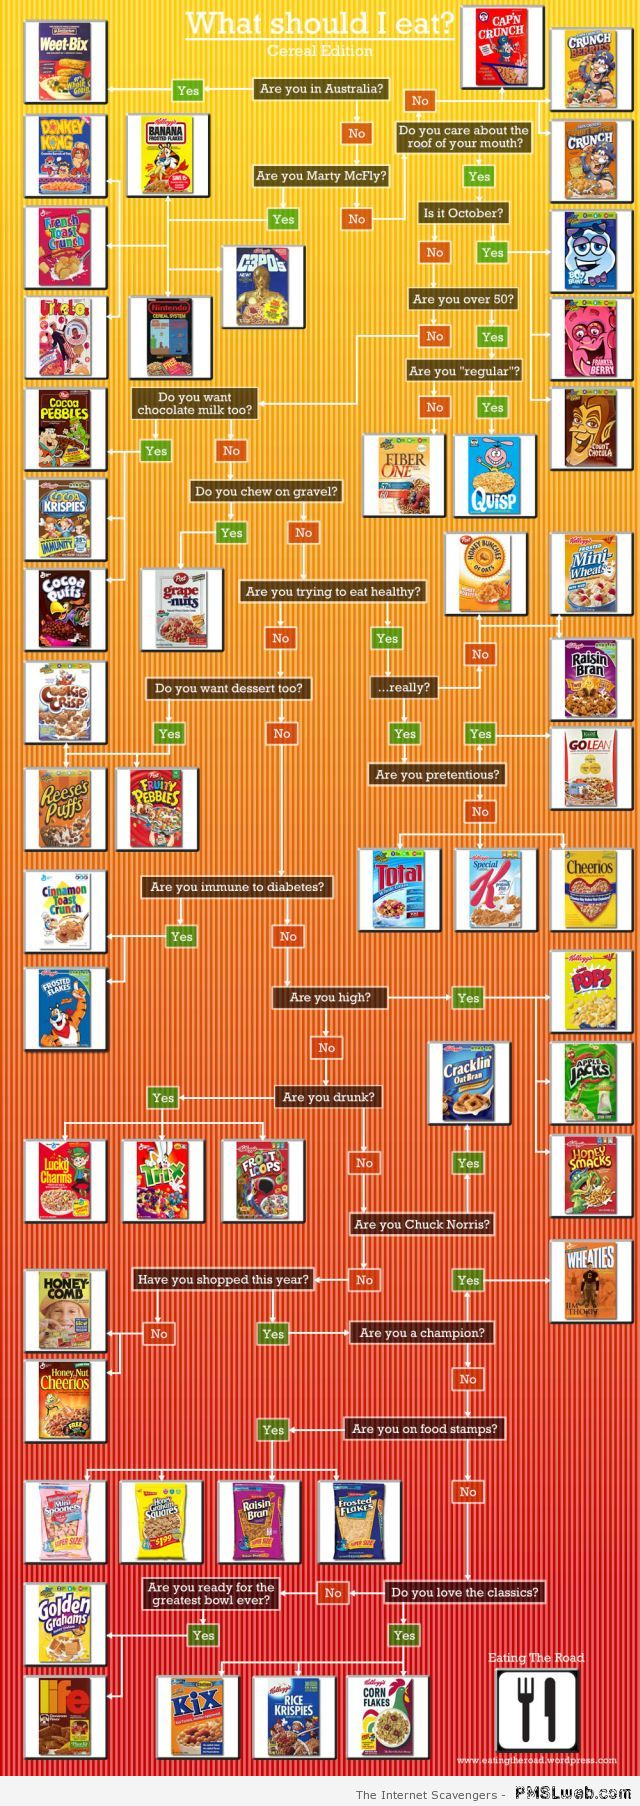 What cereal should you eat at PMSLweb.com